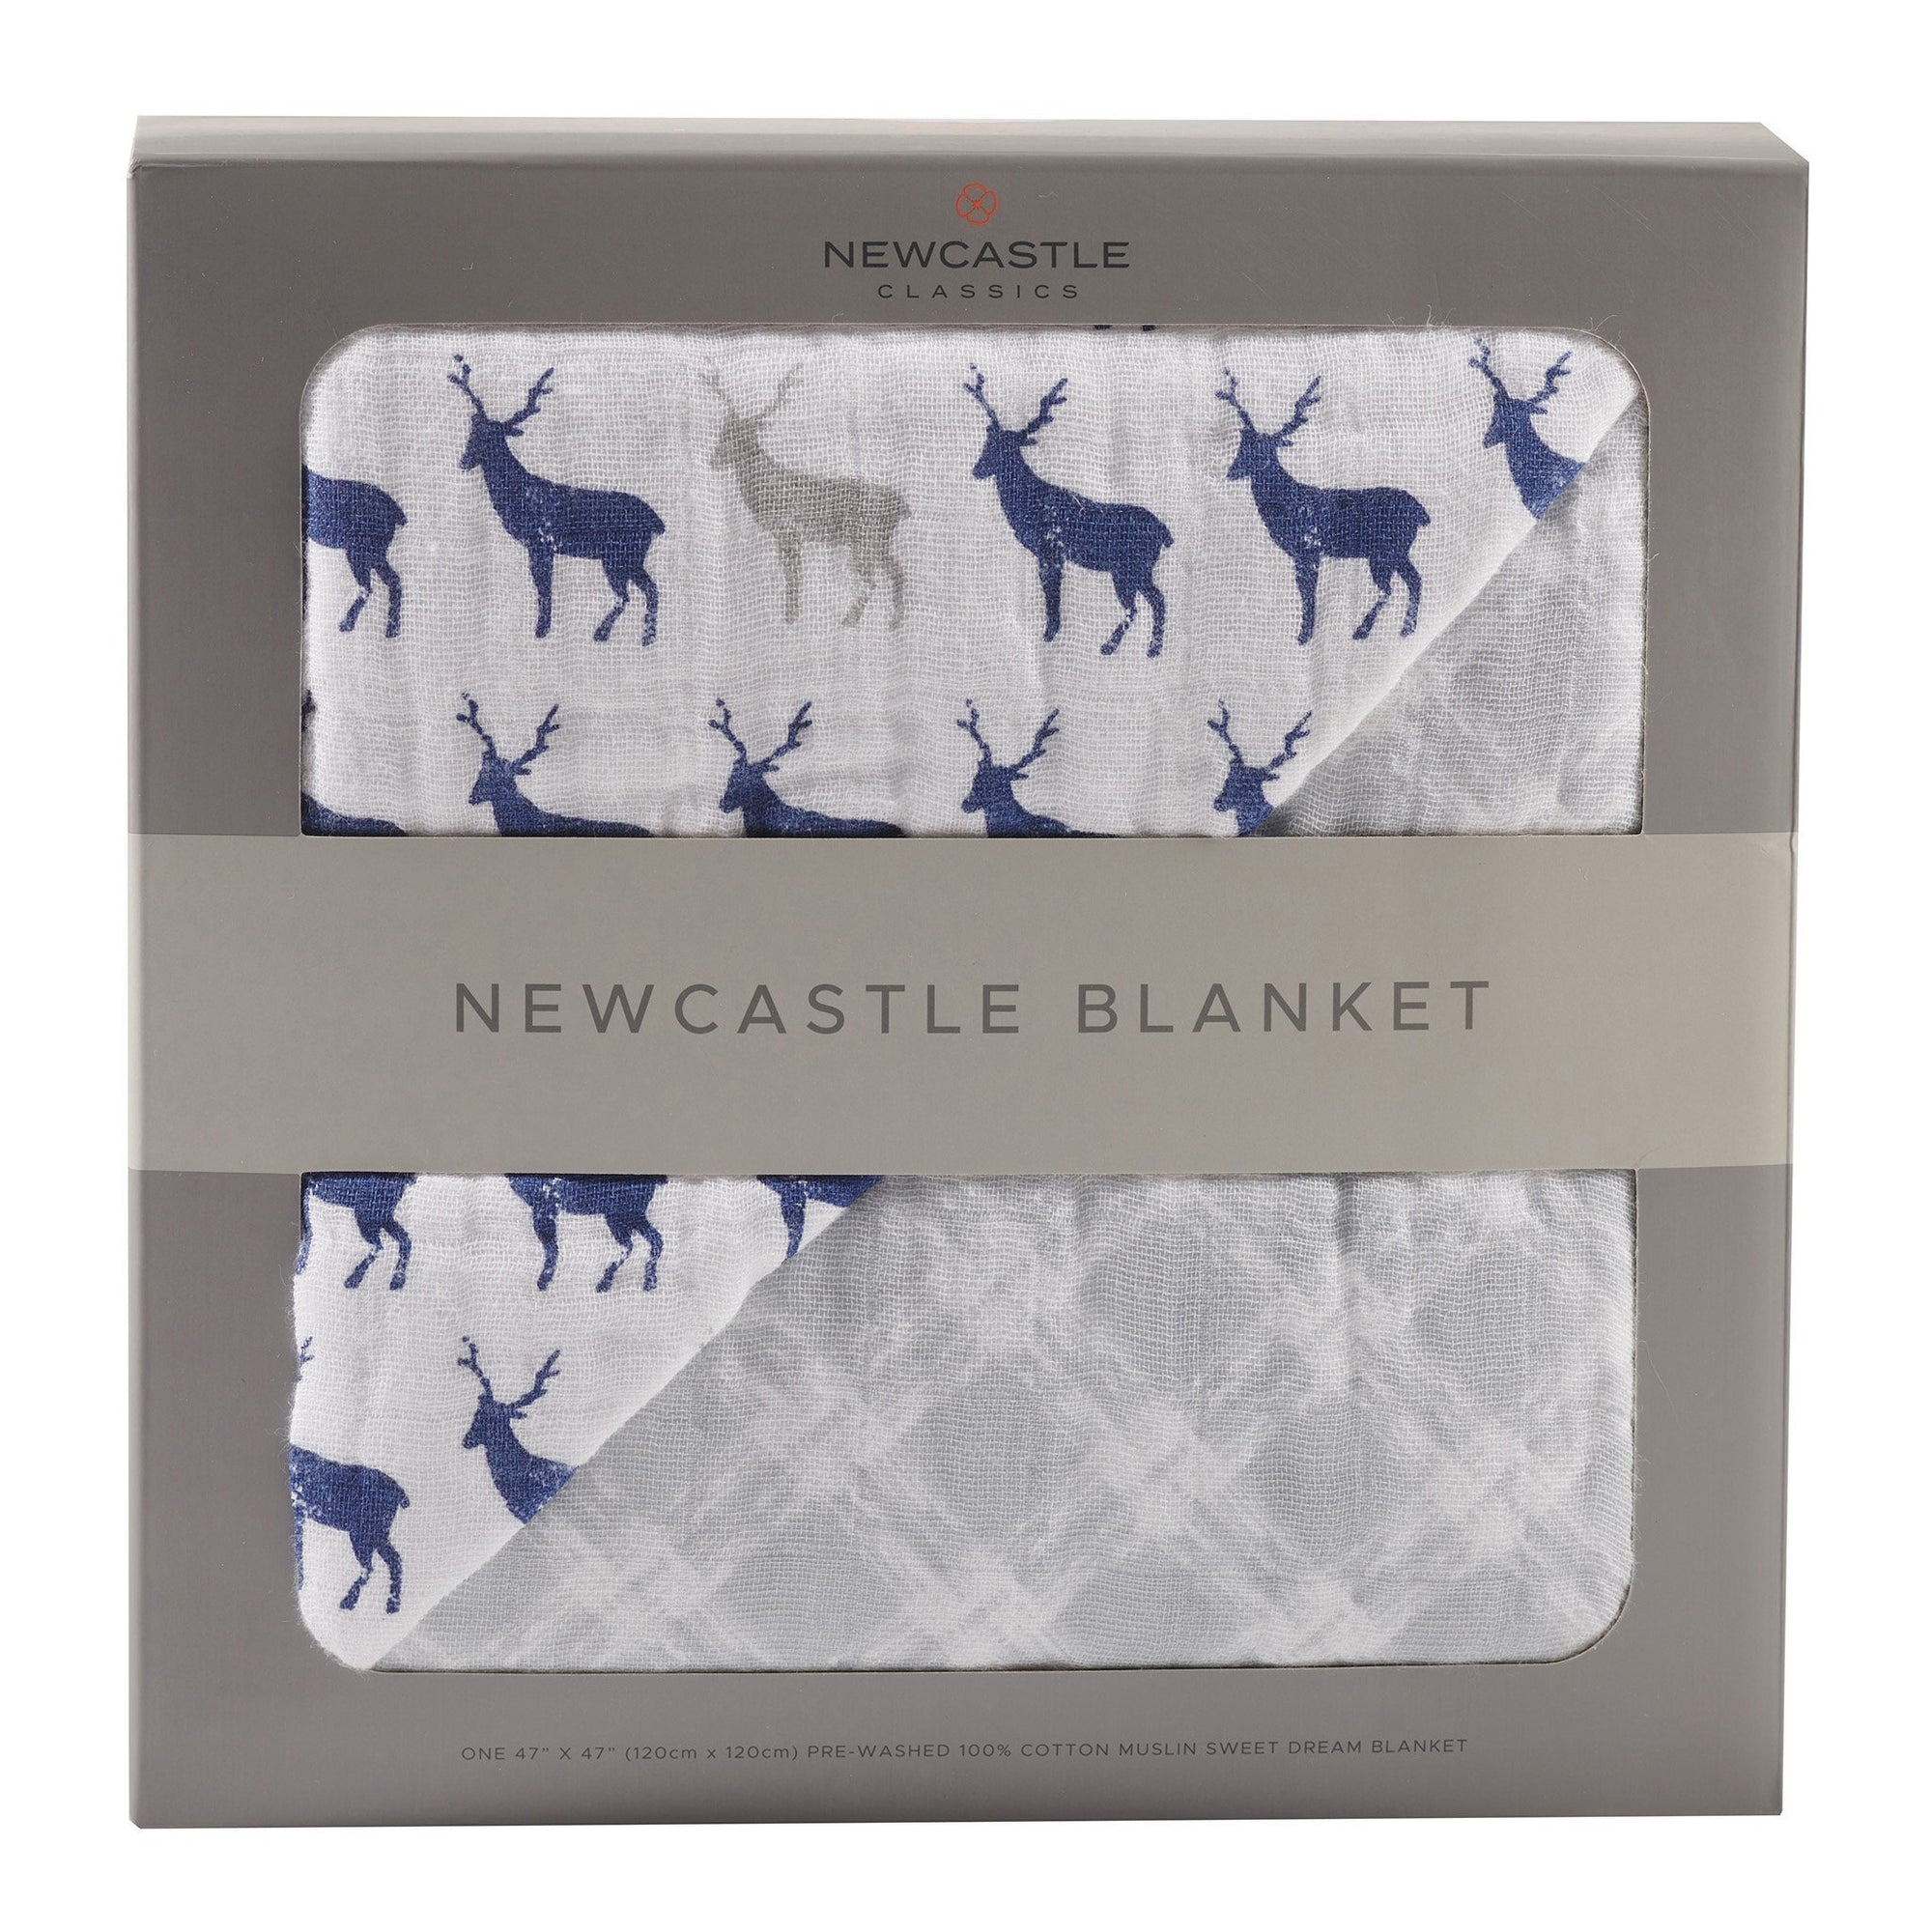 Blue Deer & Glacier Grey Newcastle Blanket - Baby World Inc